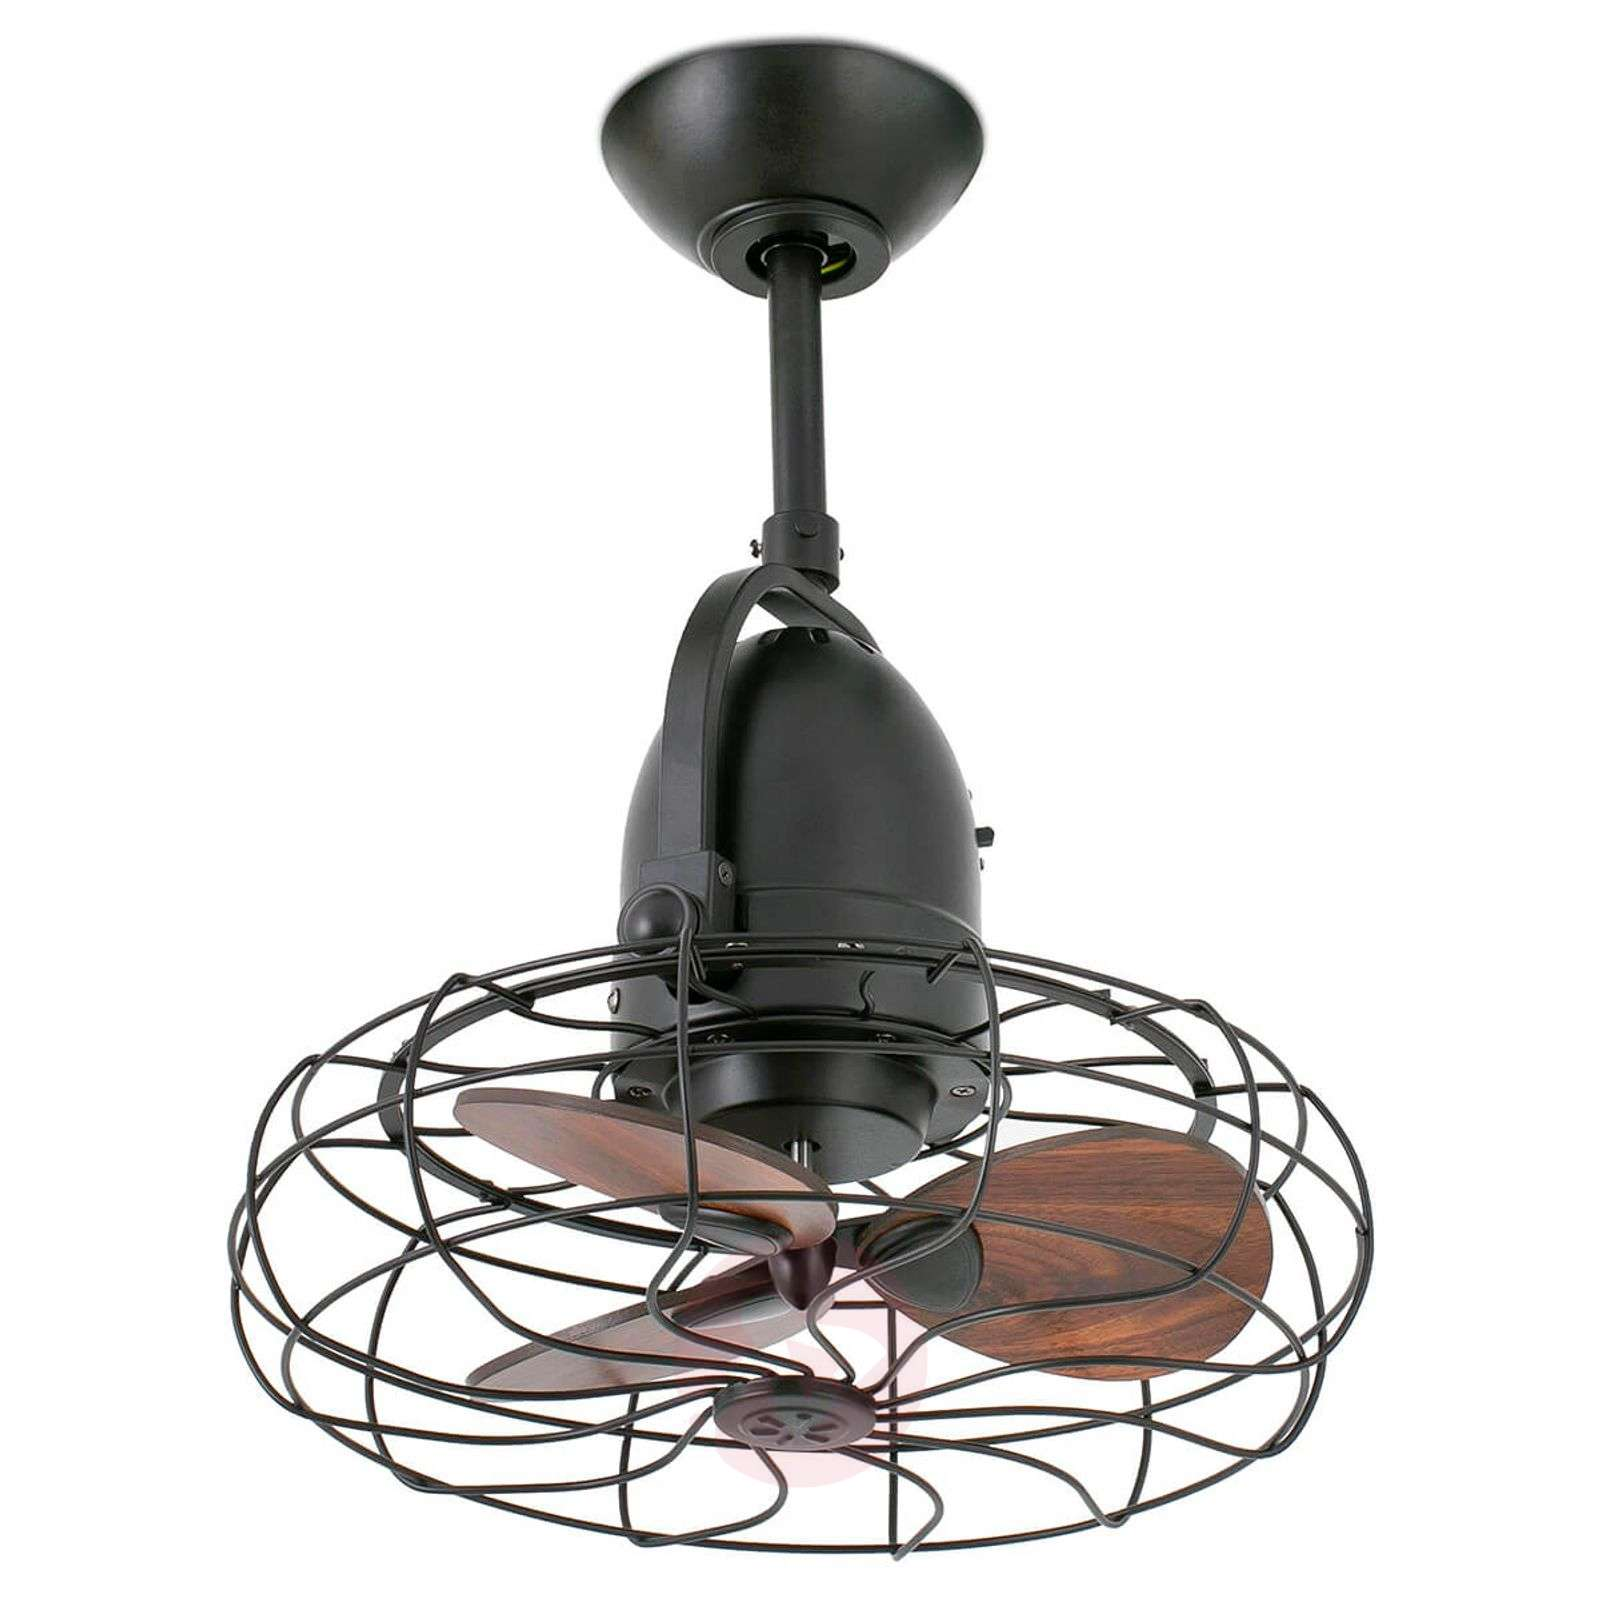 Keiki ceiling fan with a retro look-3505397-01